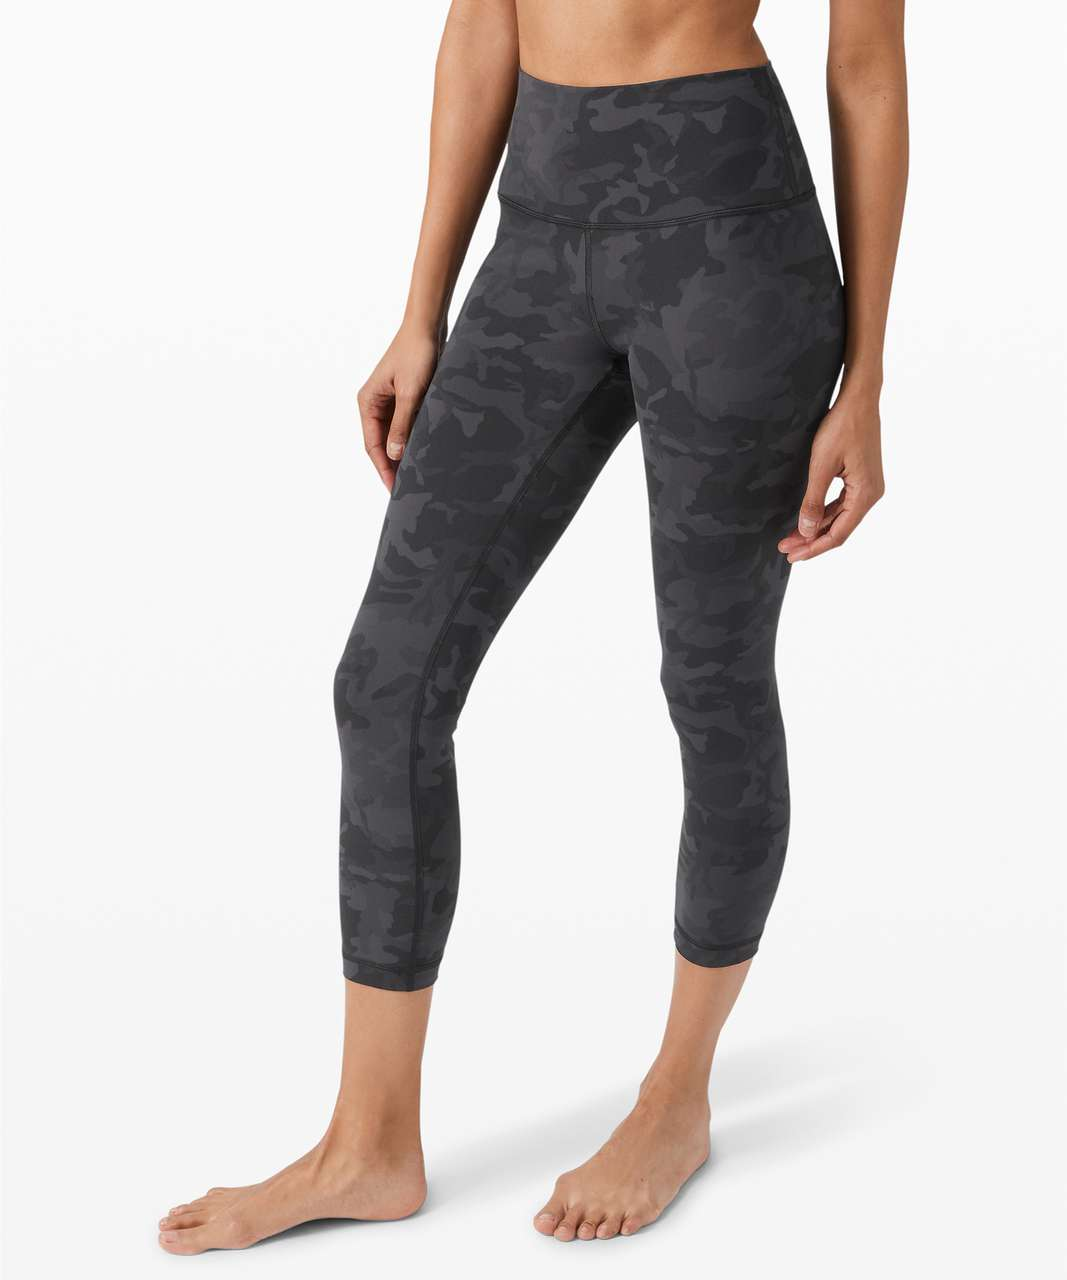 "Lululemon Wunder Under Crop High-Rise *Full-On Luxtreme 23"" - Incognito Camo Multi Grey"